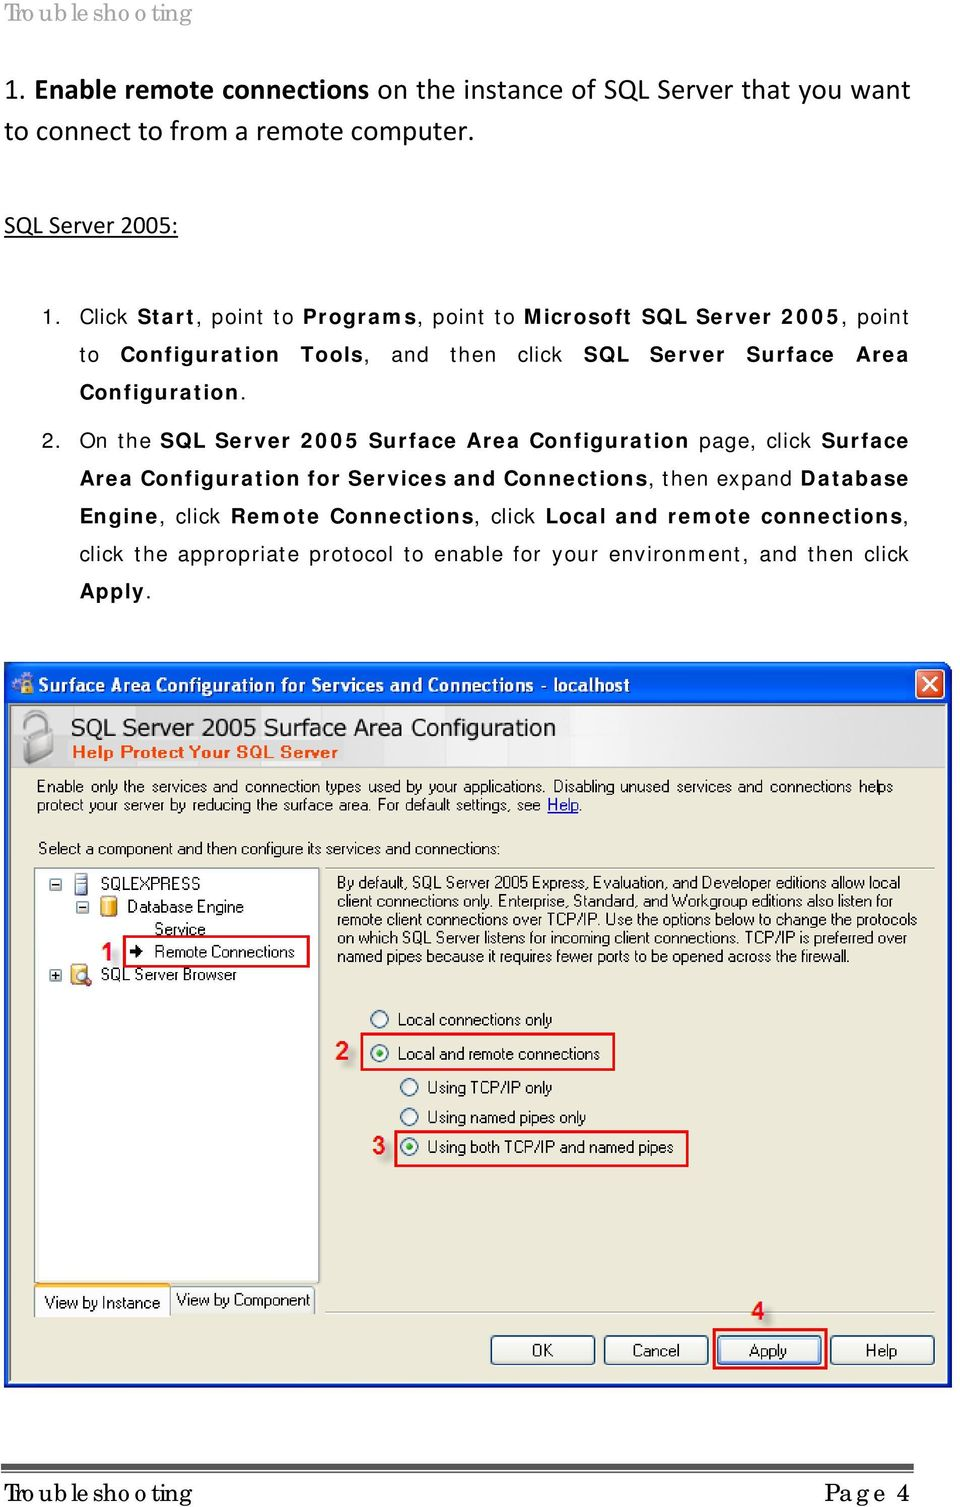 2. On the SQL Server 2005 Surface Area Configuration page, click Surface Area Configuration for Services and Connections, then expand Database Engine,